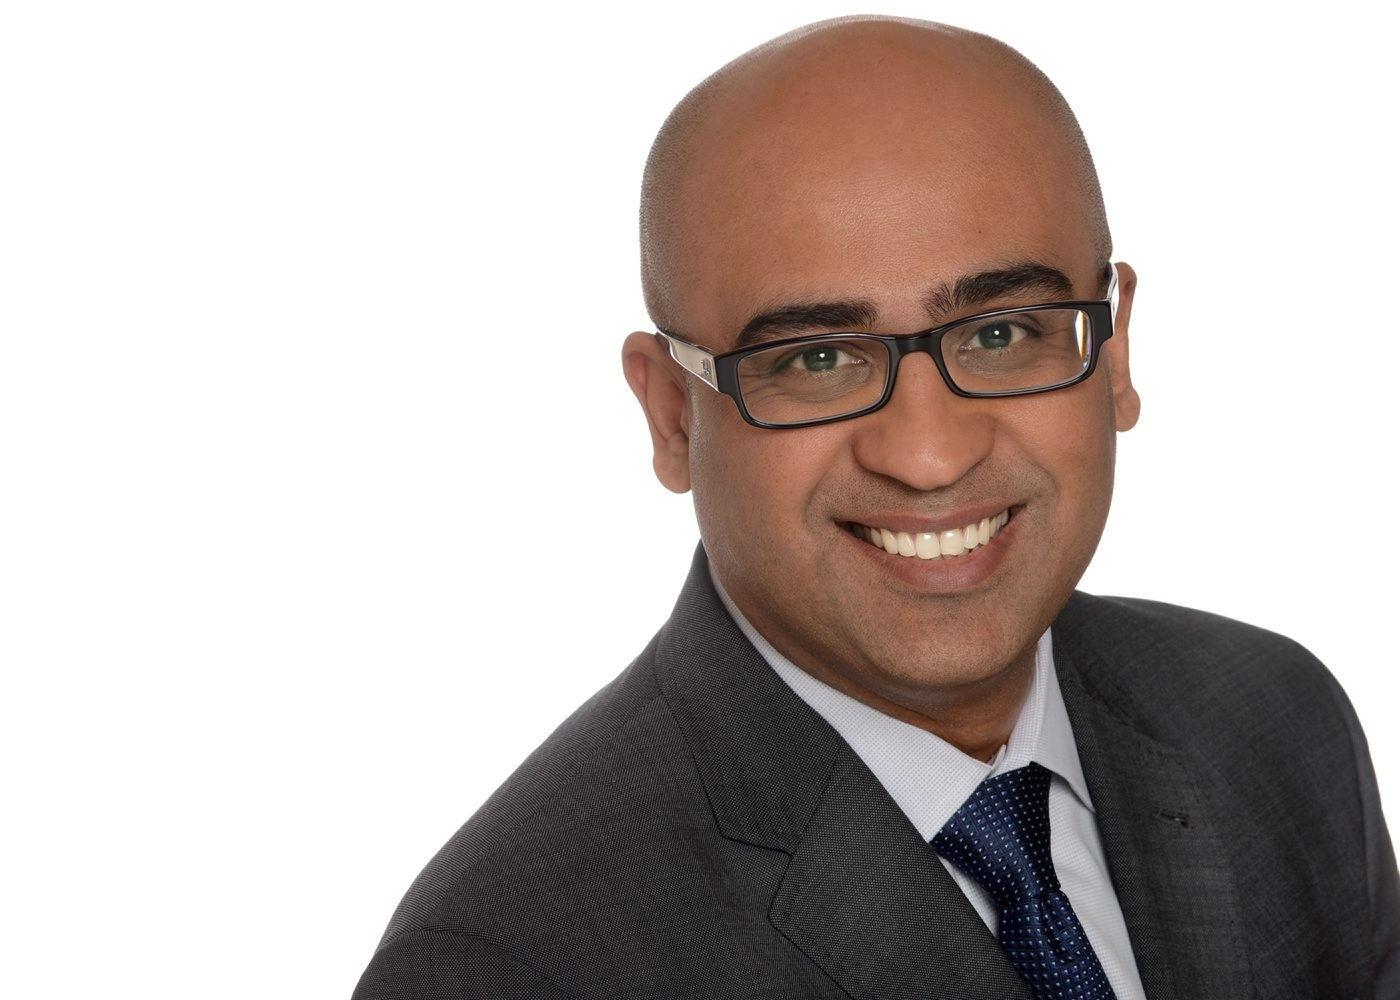 Himesh Bhise was named CEO of Synacor